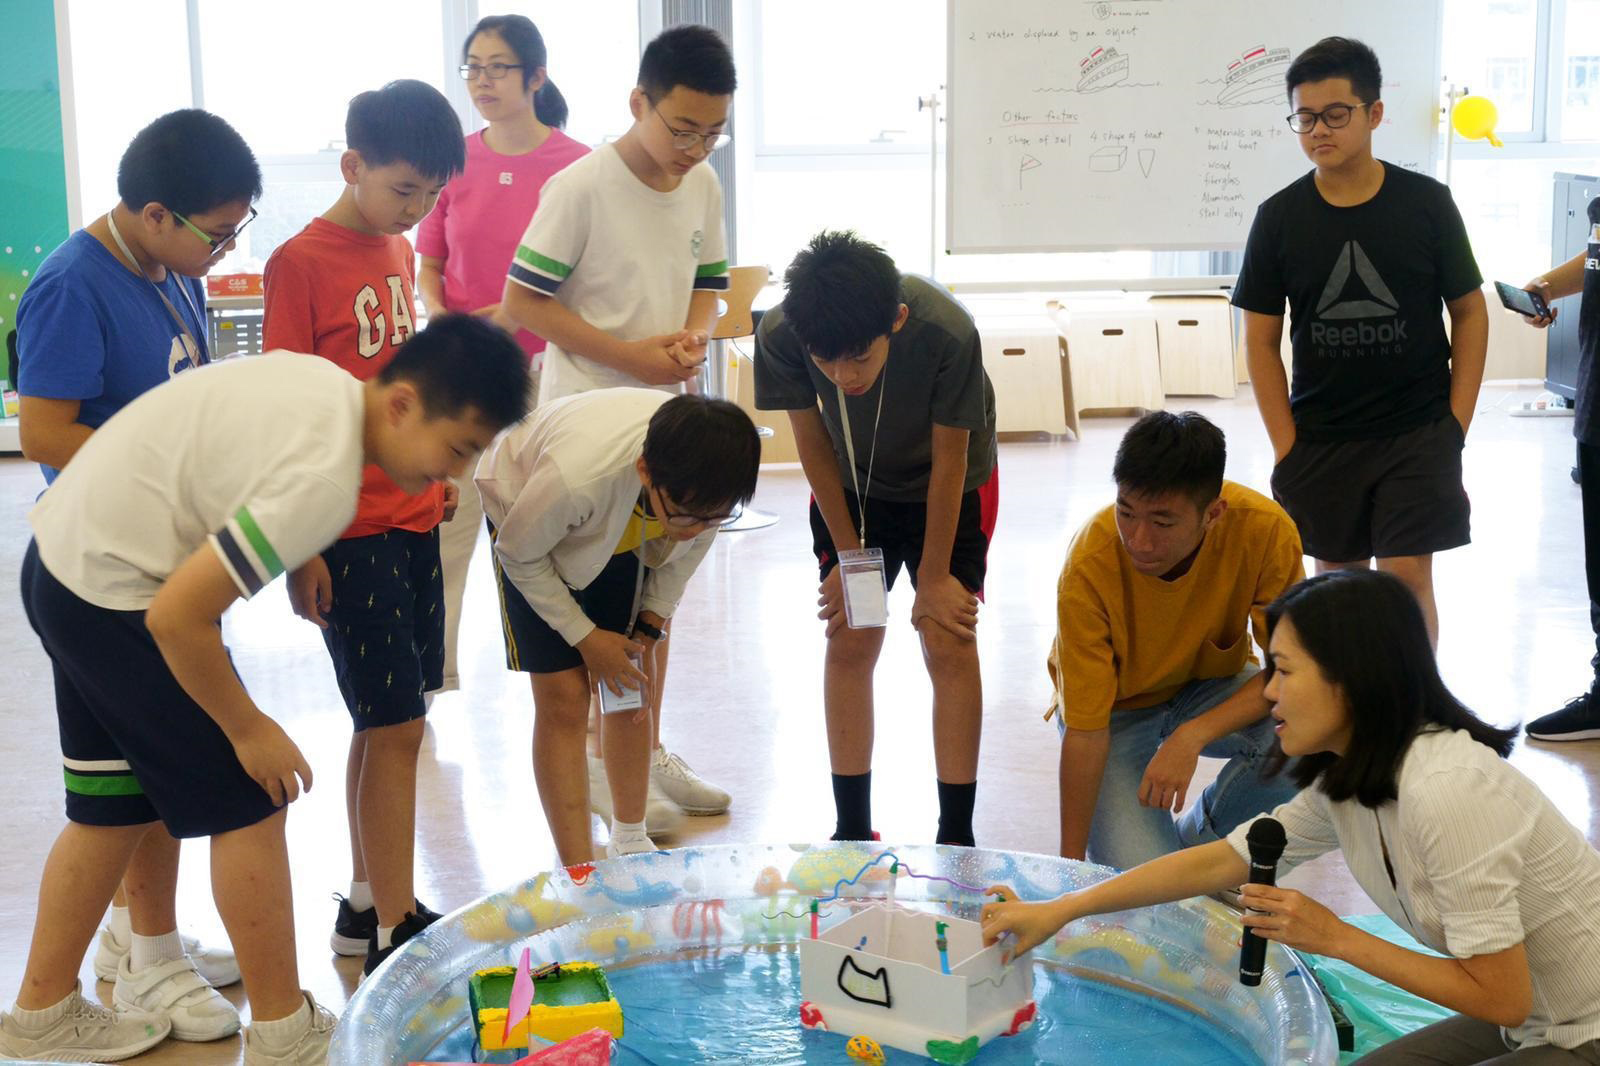 UM's science promotion camps target primary school students for the first time